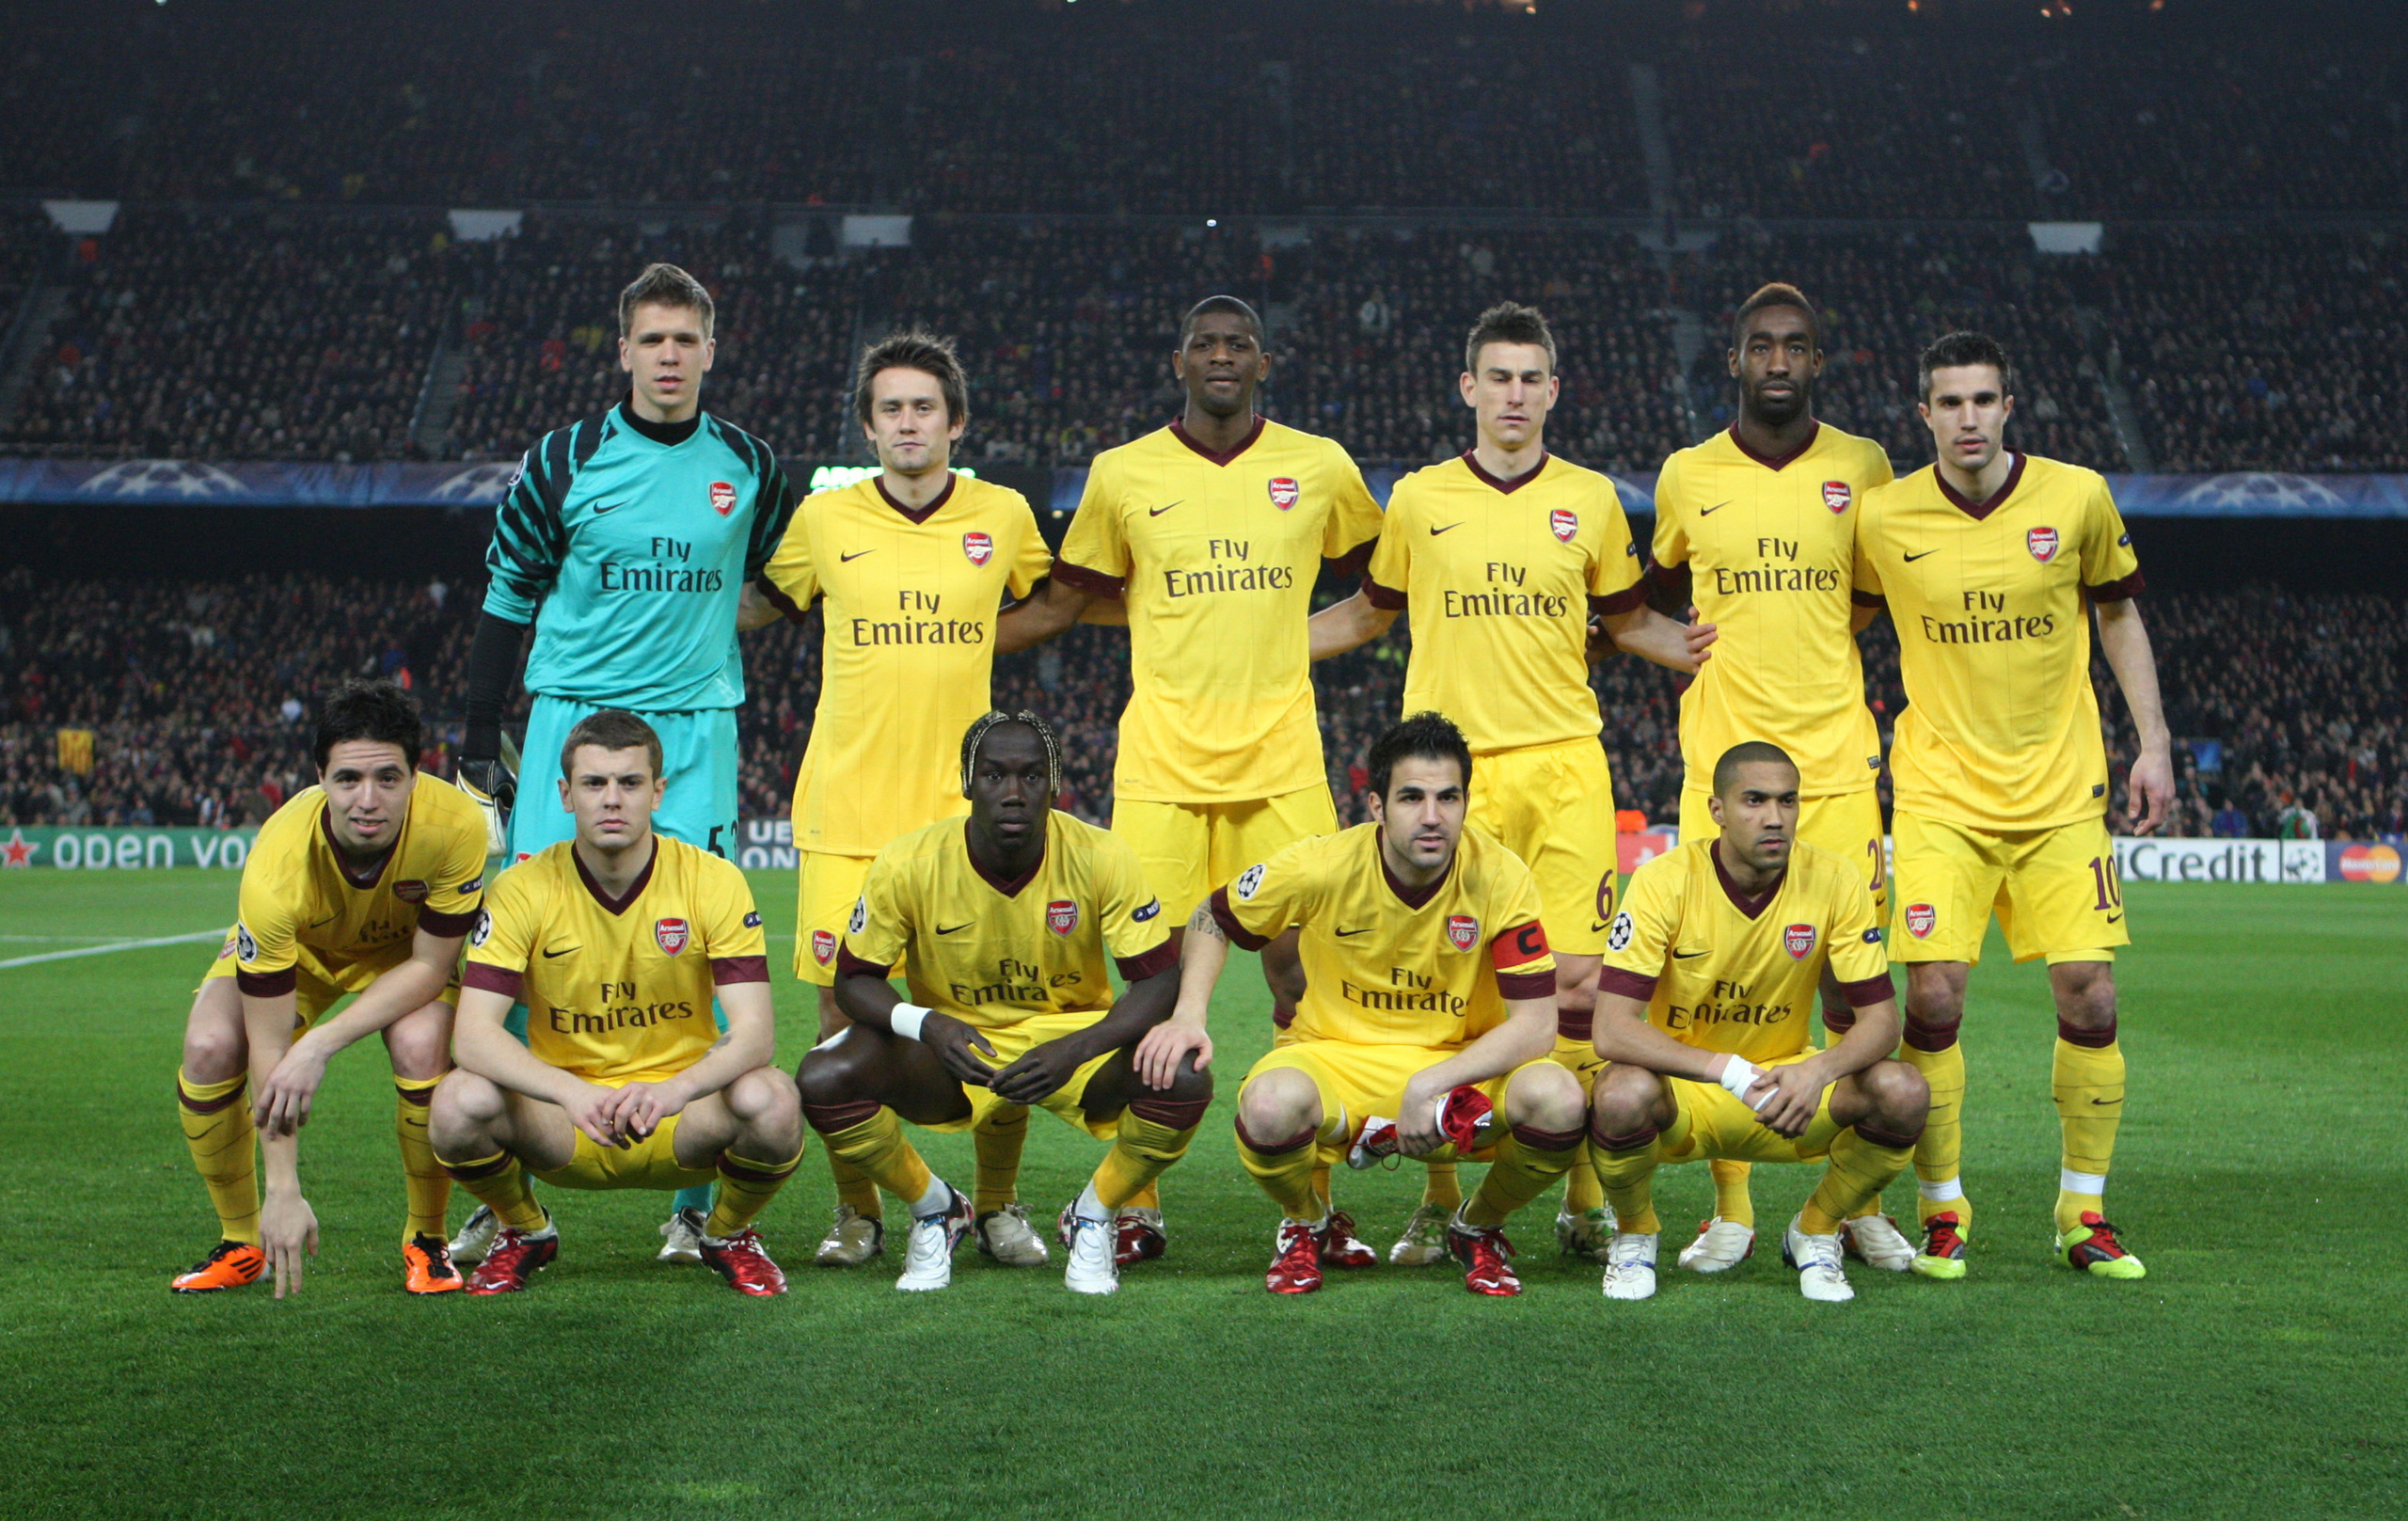 FC Barcelona images Barcelona vs Arsenal (3-1) HD wallpaper and background photos